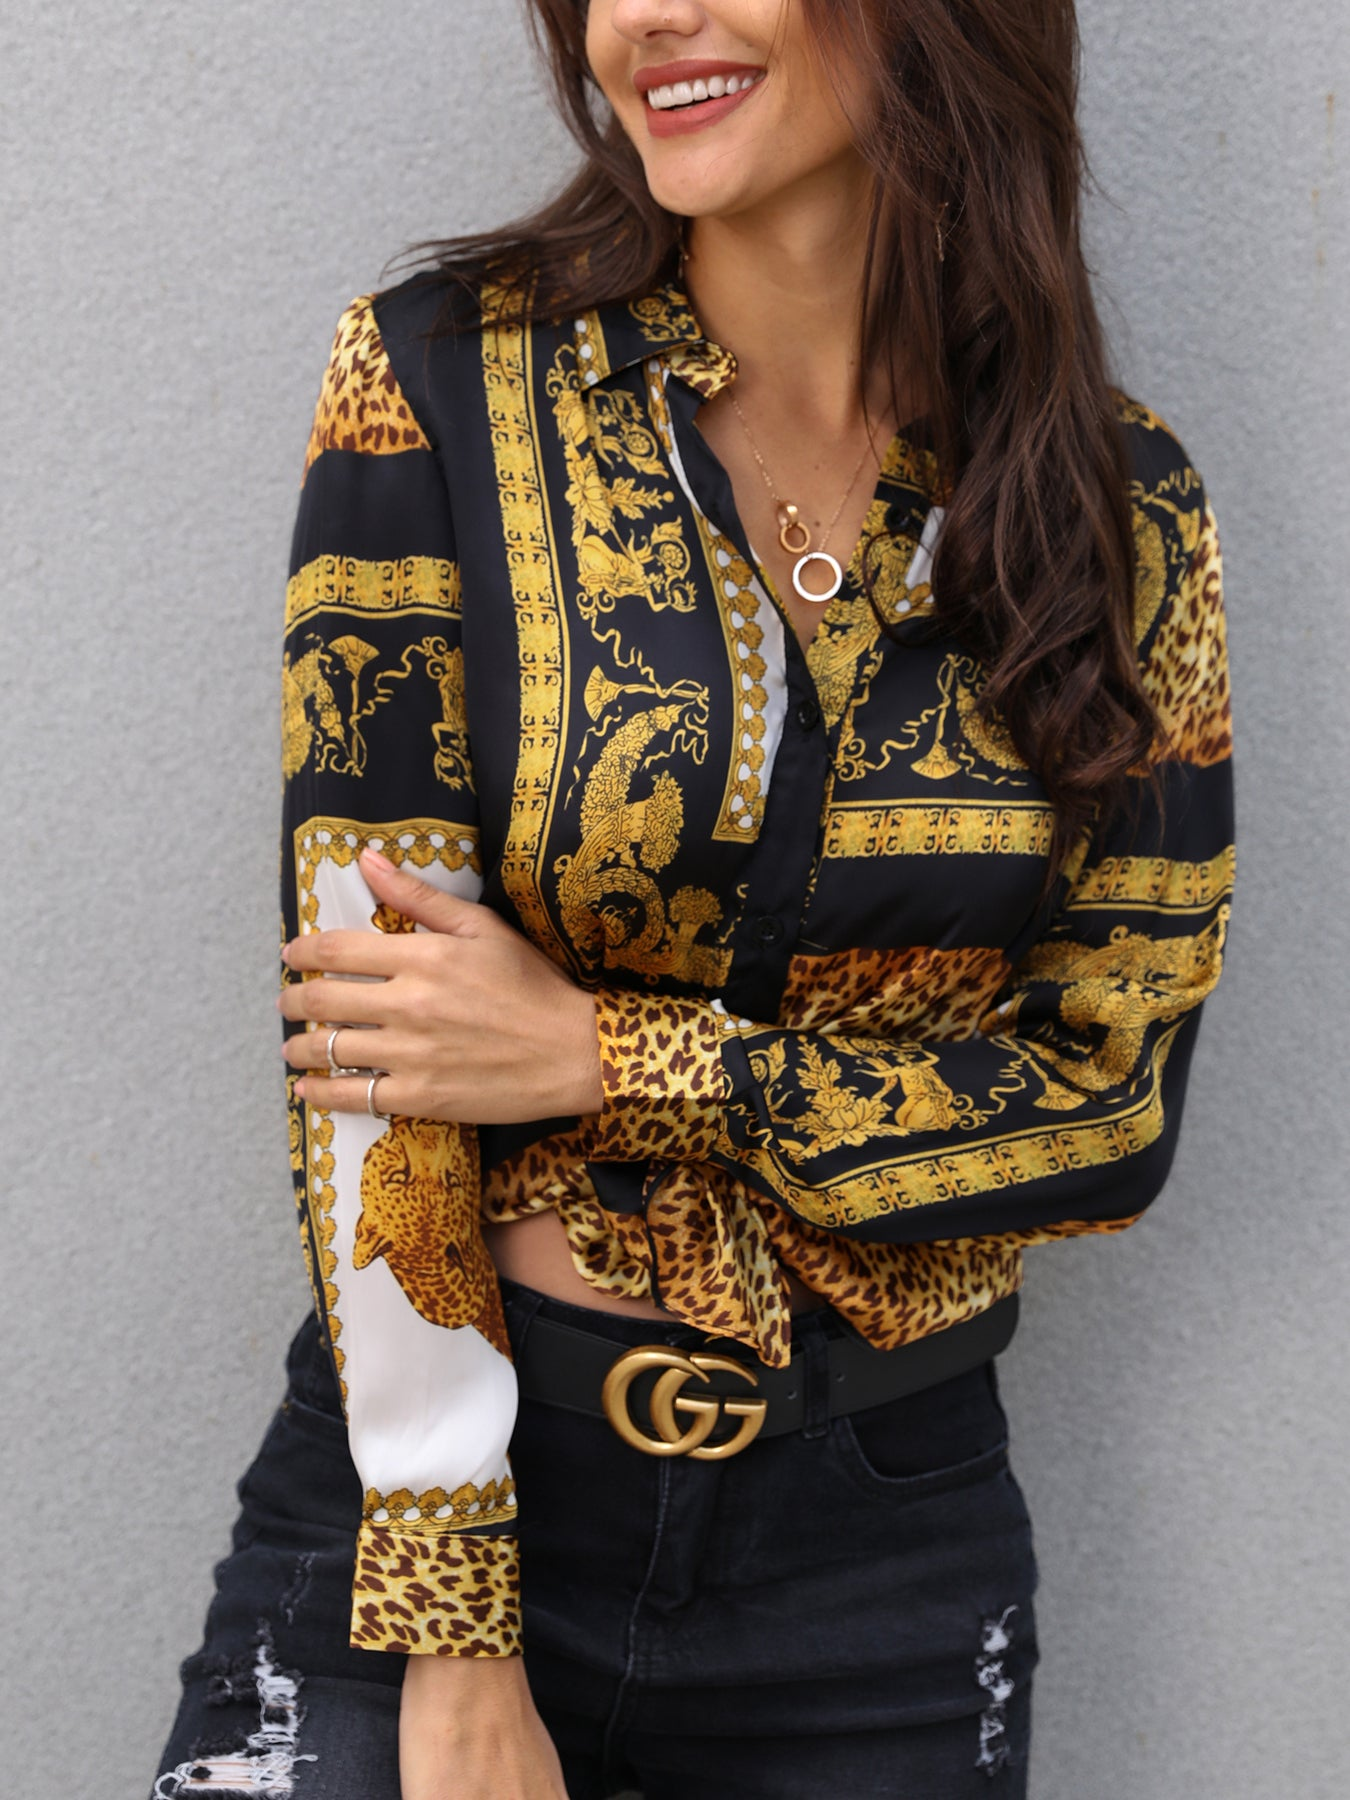 Blouse 2019 Spring Women Leopard Print Knot Front Blouse Shirt Office Lady Elegant Turn-down Collar Long Sleeve Button Shirt